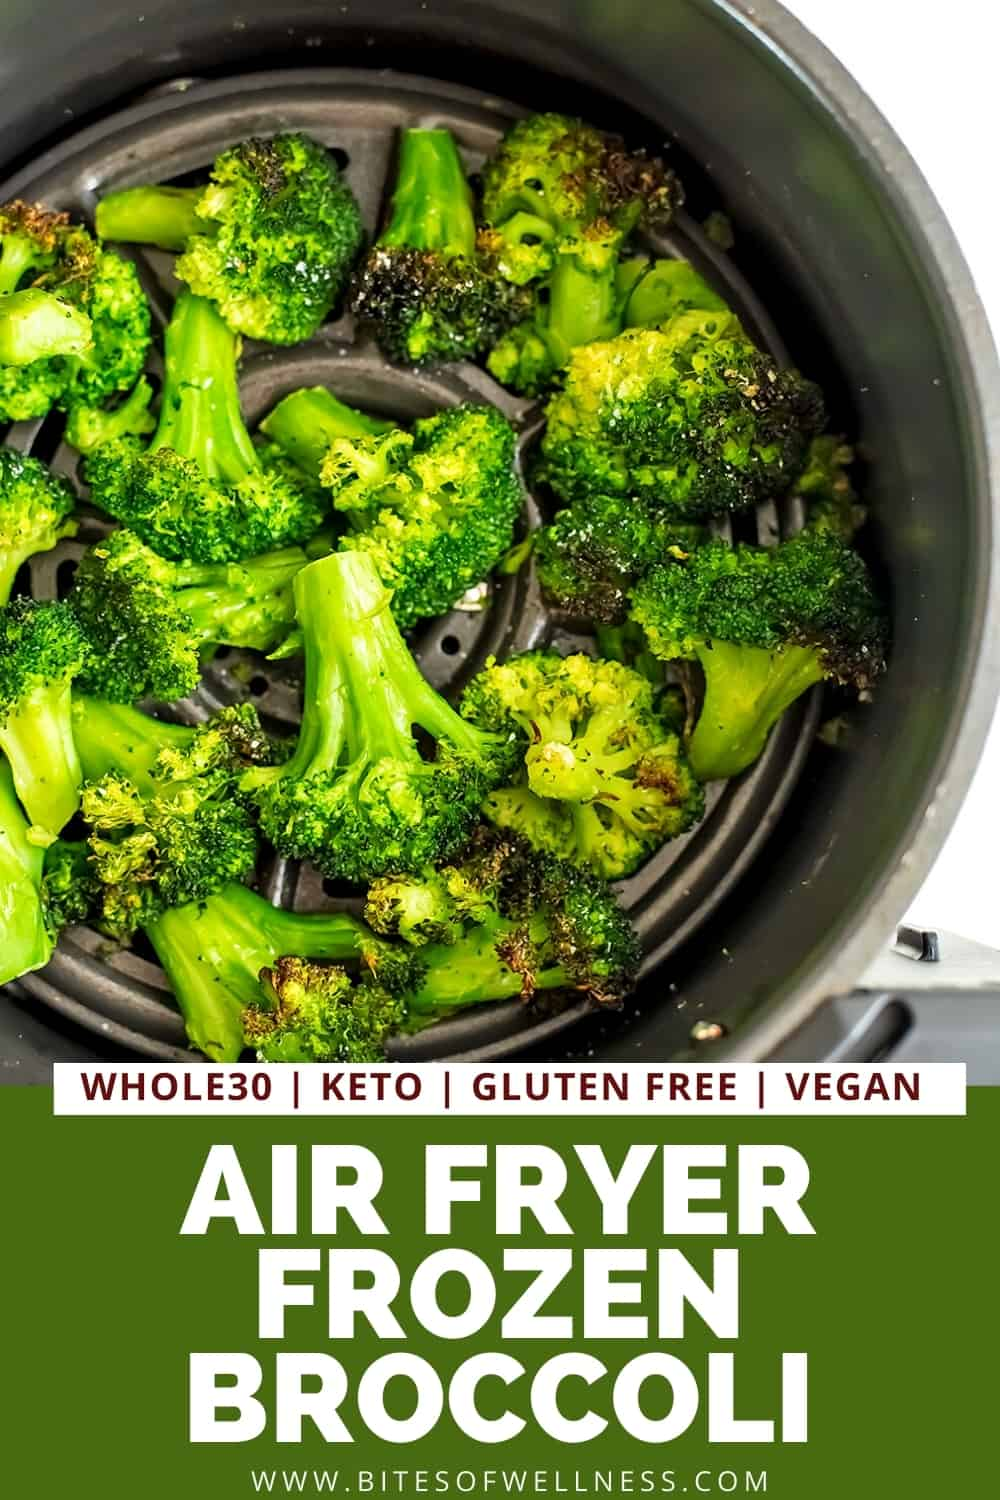 Air fryer frozen broccoli in air fryer after cooking.